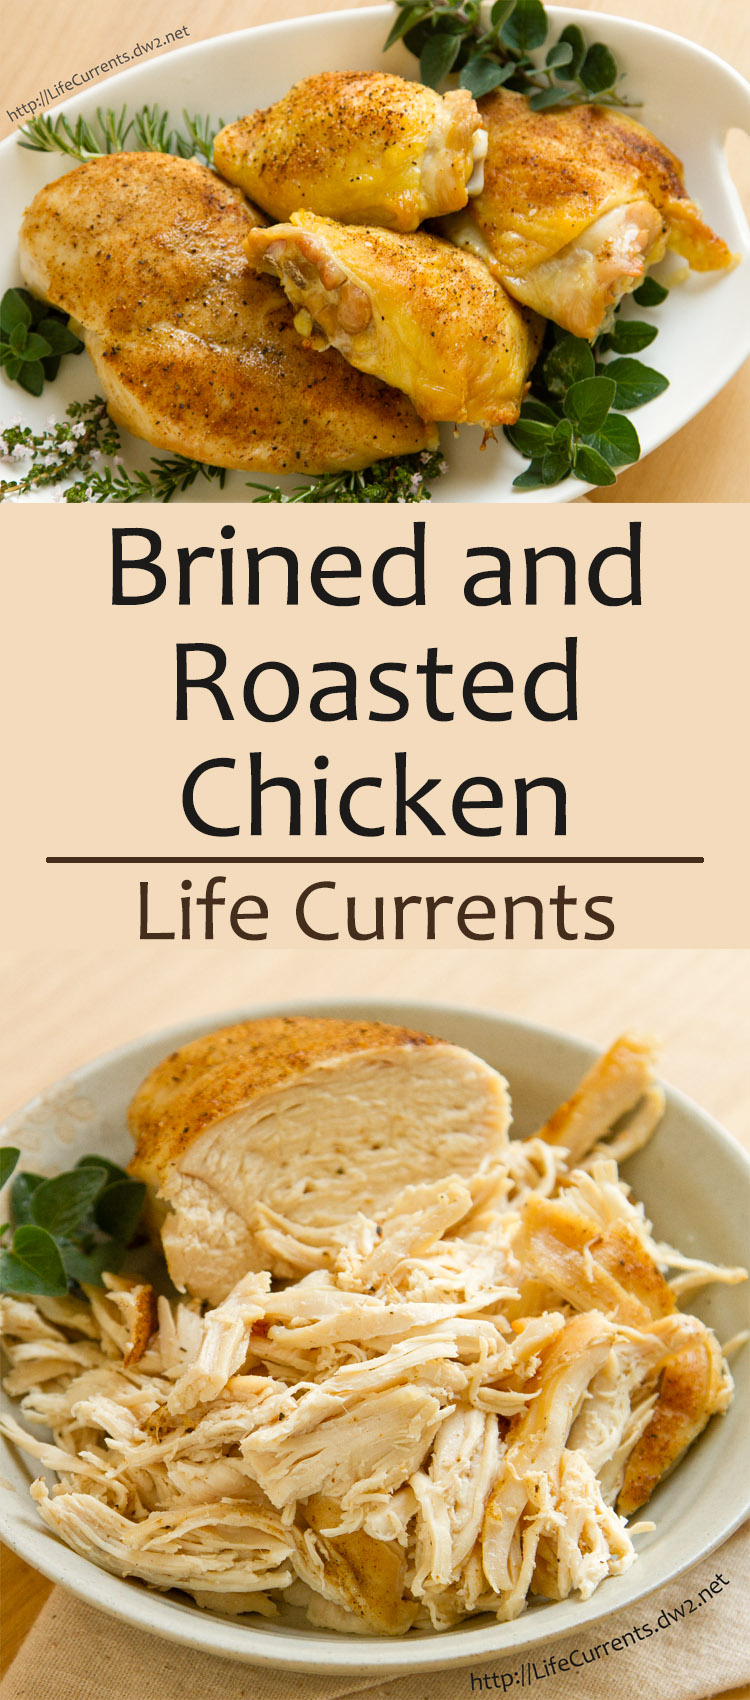 Brined and Roasted Chicken from Life Currents is a simple and delicious way to cook chicken. Your family will love the moist chicken, shredded, chopped, or left whole, and you'll love that clean up is easy and quick.